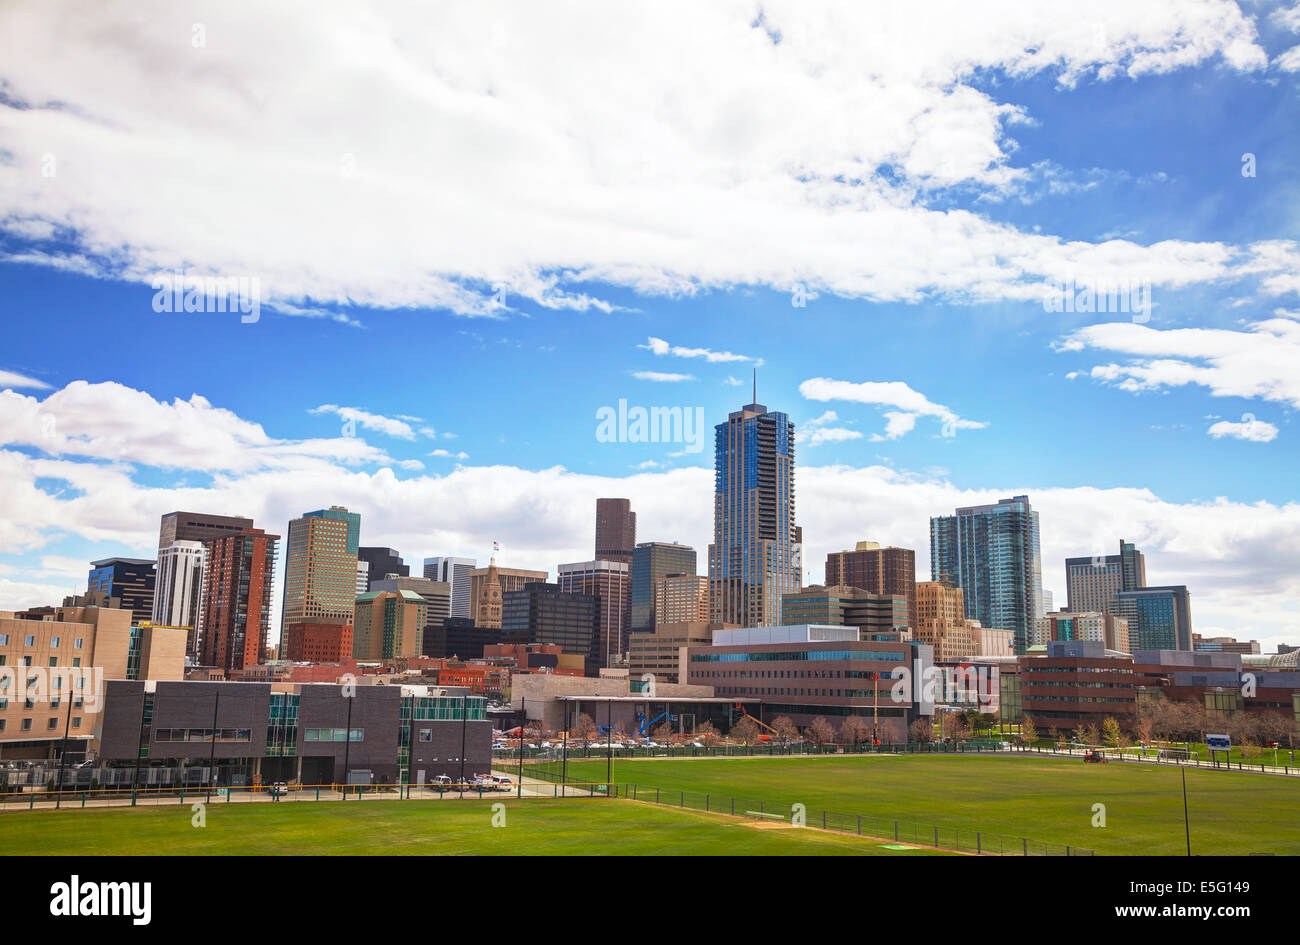 Downtown Denver cityscape on a sunny day - Stock Image